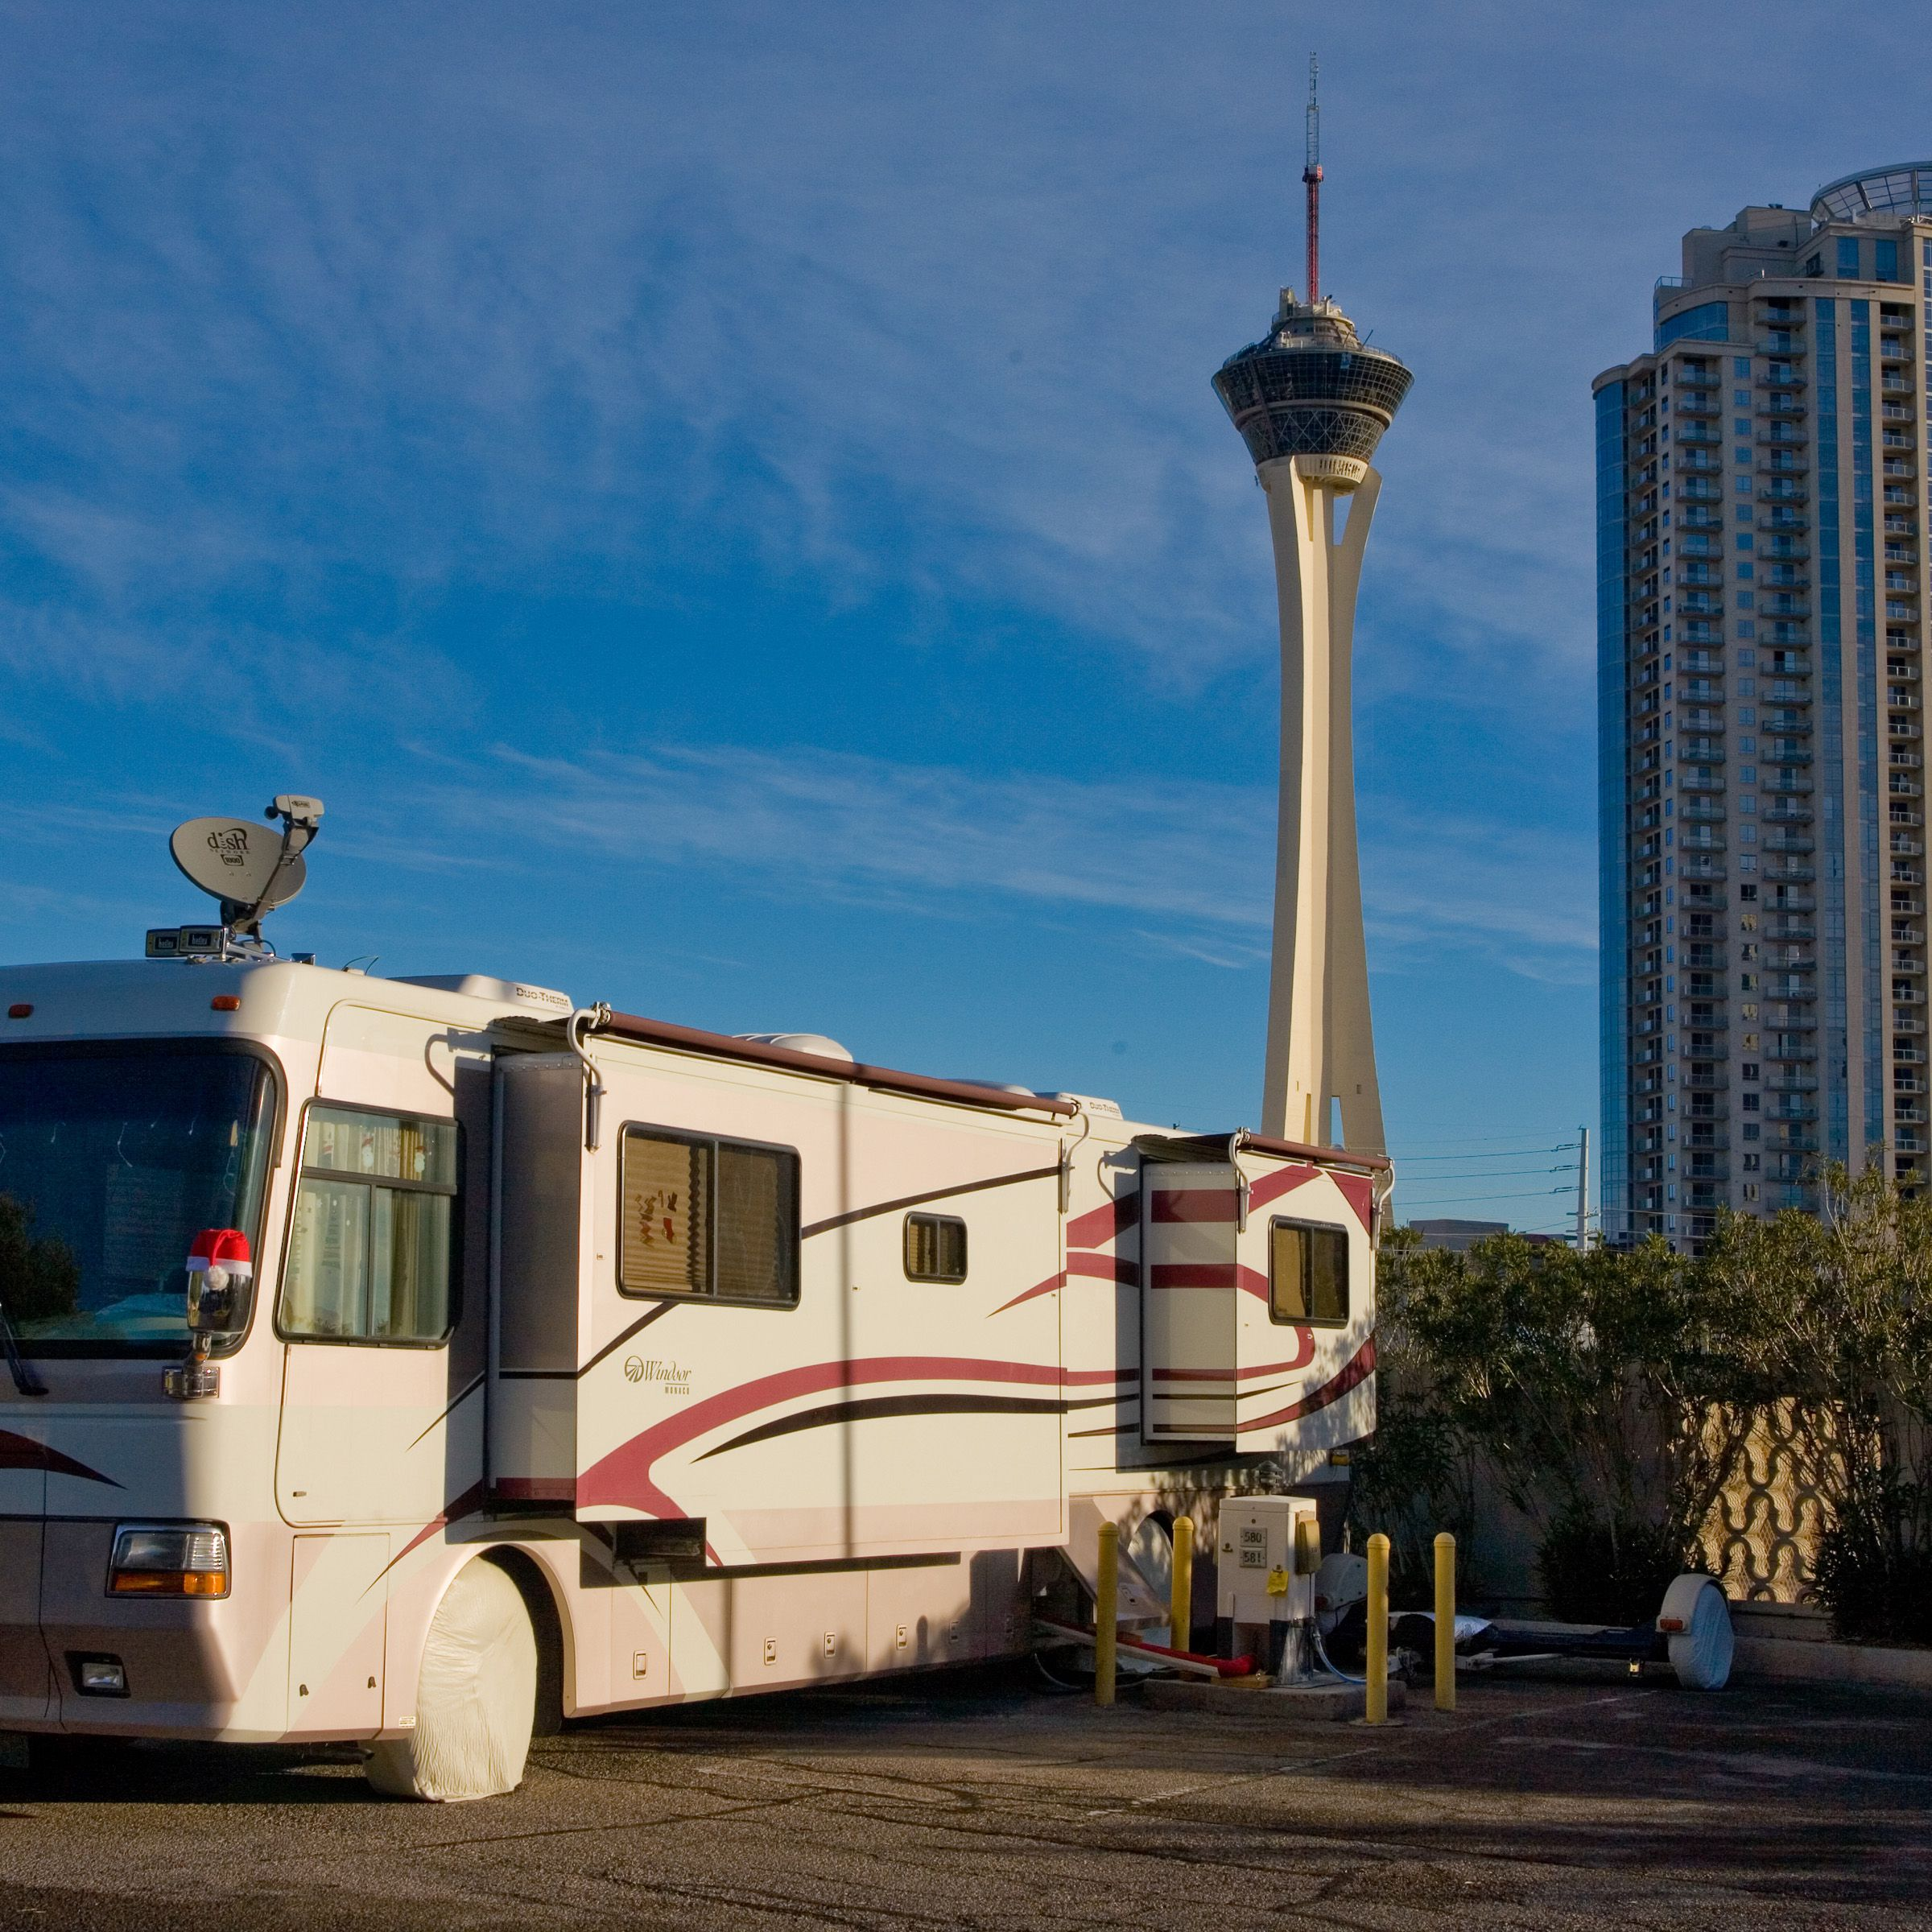 RV v.s. Hotels: Which One Is Cheaper?